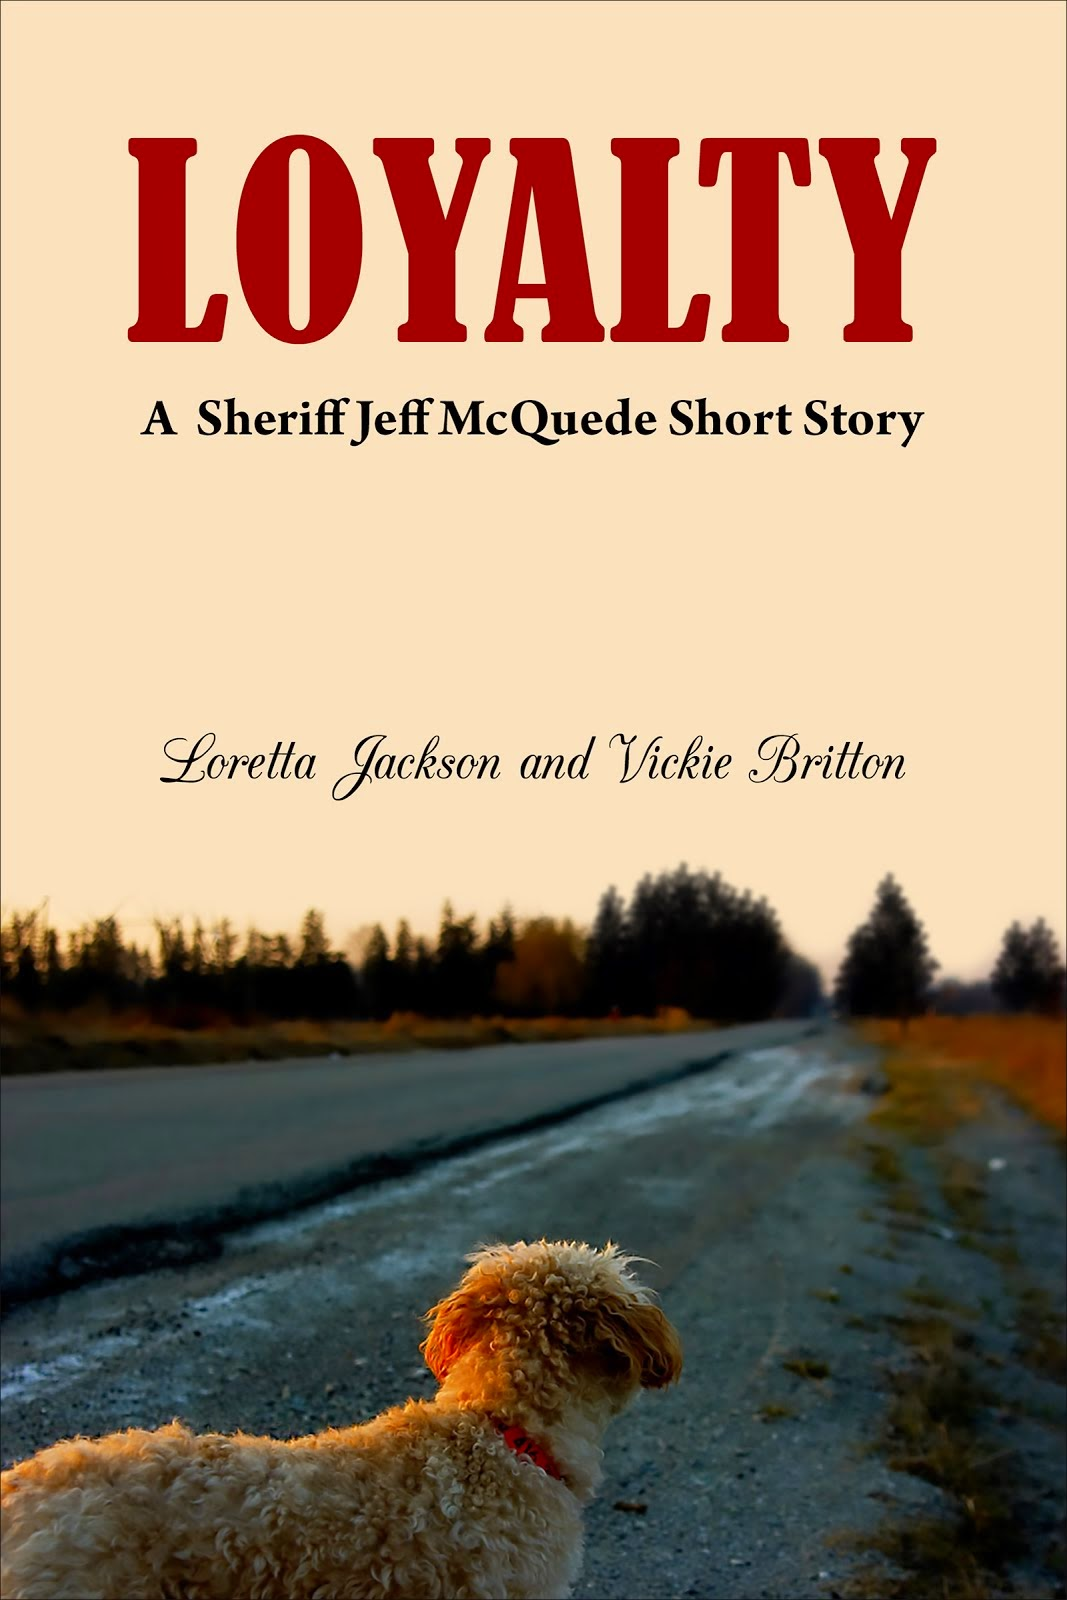 Read LOYALTY a Jeff McQuede short story only .99c on Kindle